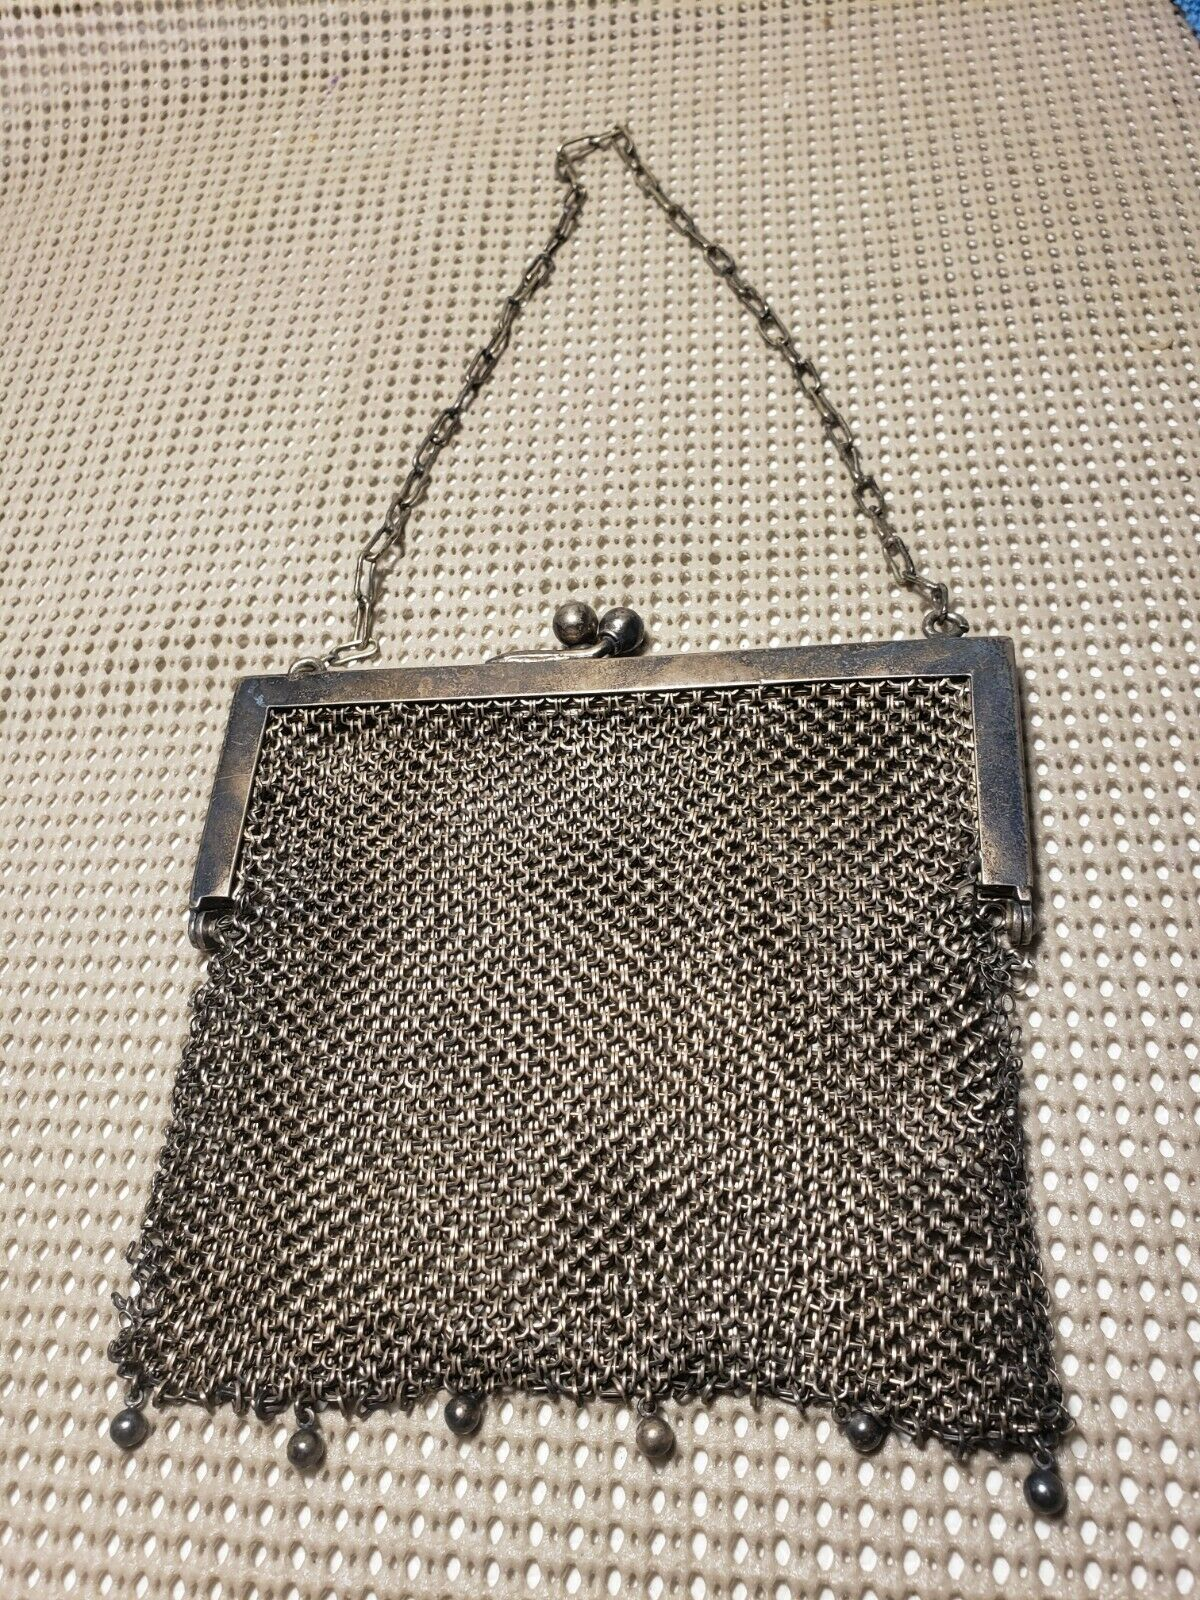 vintage german silver mesh purse will need some repairs